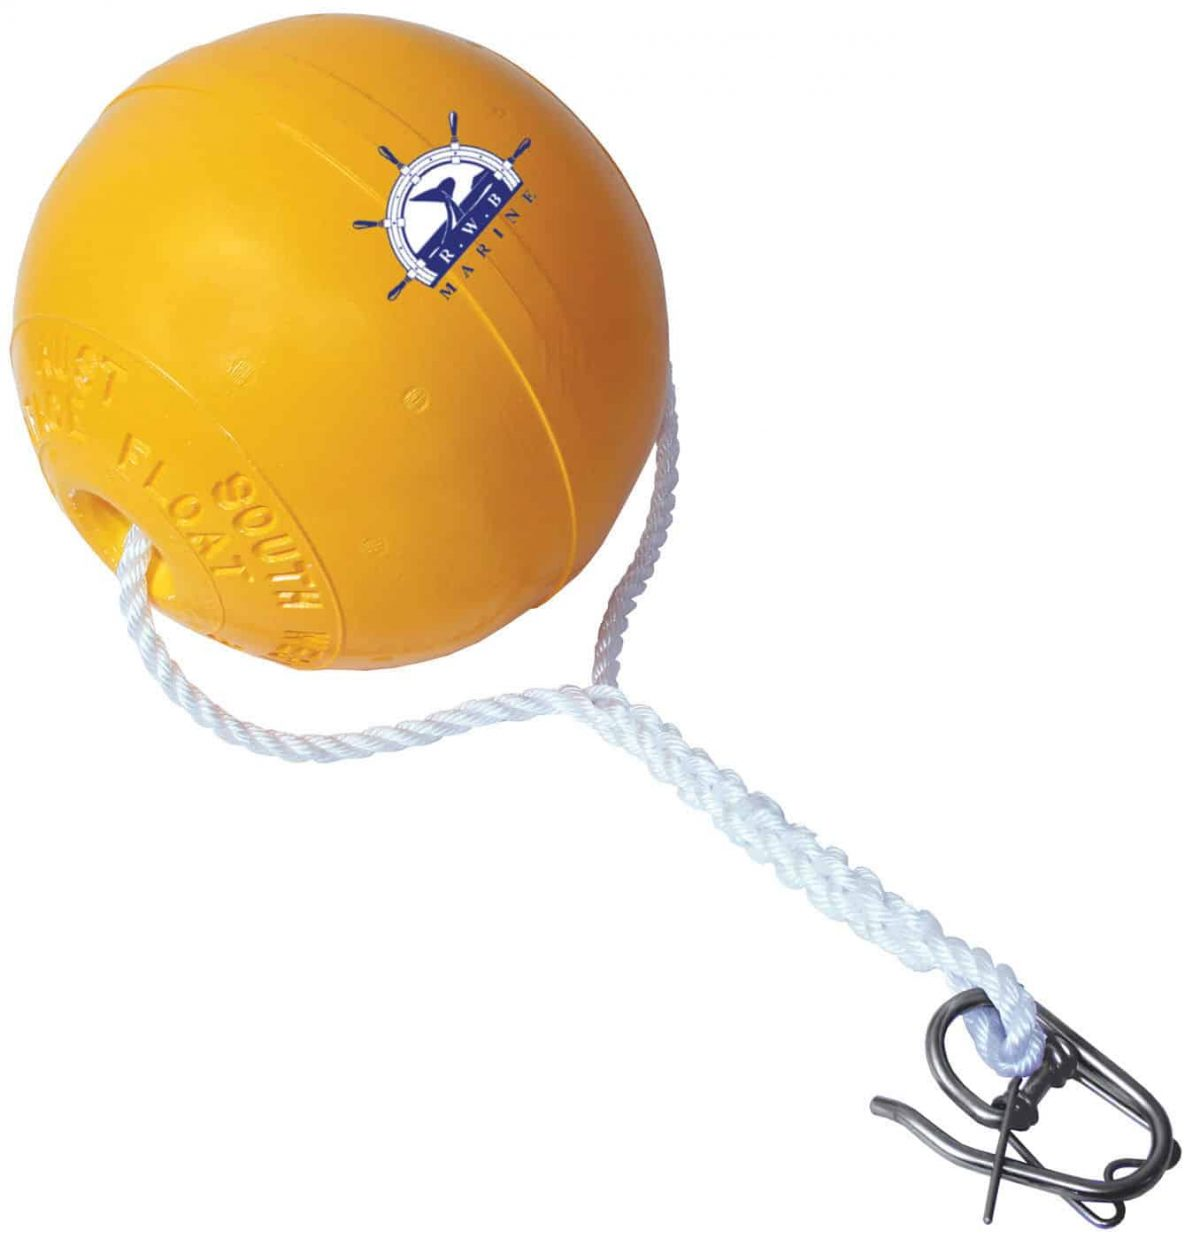 New Ezy Lift Anchor Lifting Device - Ball & Rope Small - 300mm Buoy Spliced Rope